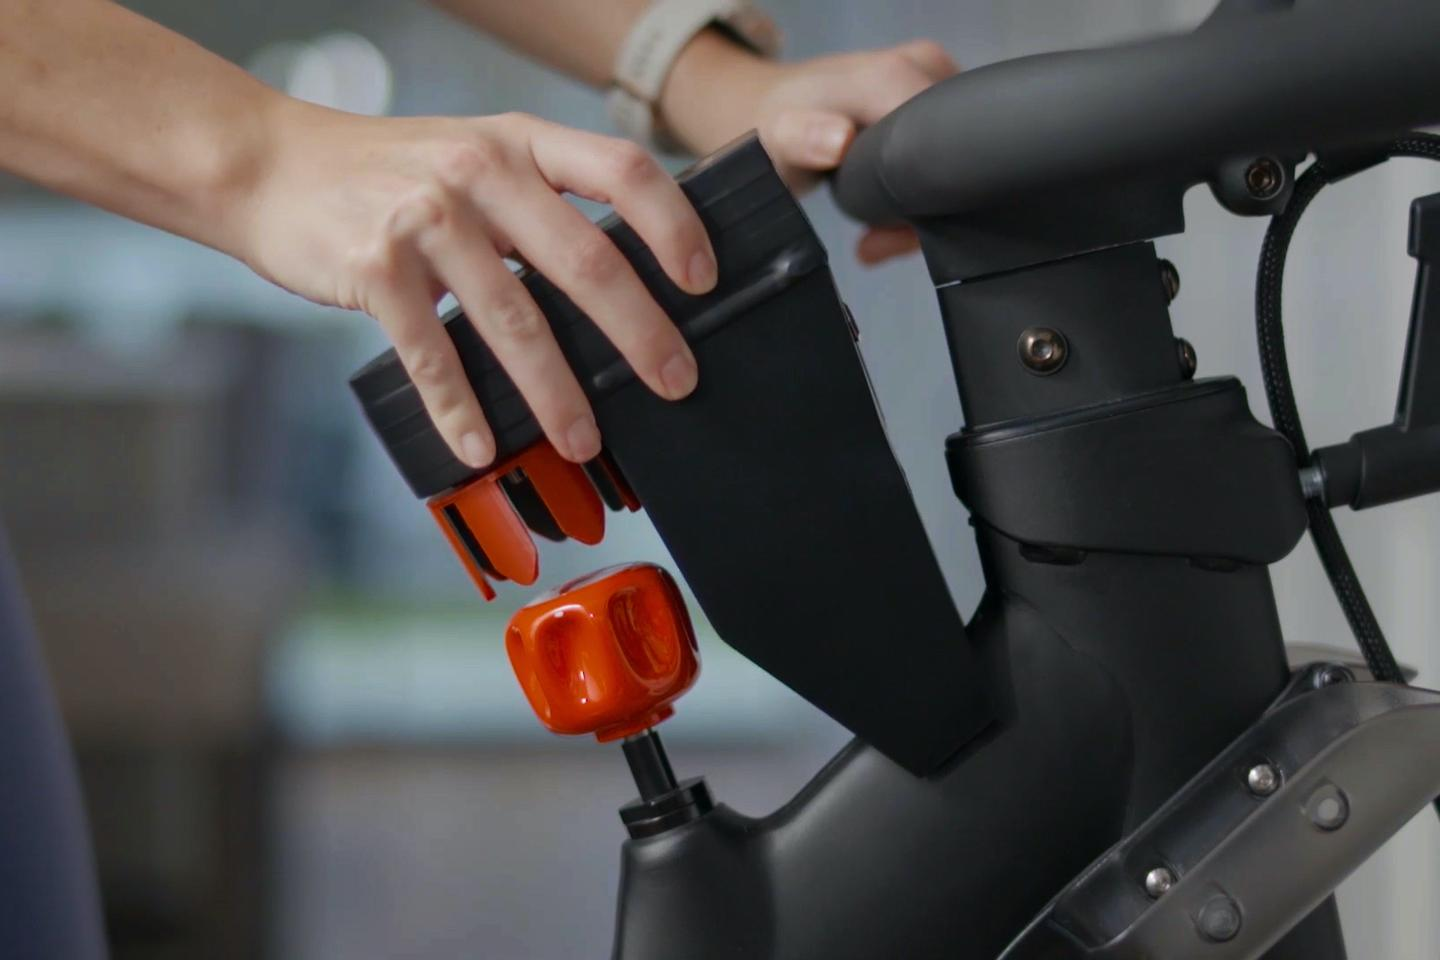 The Shift Smart Trainer is presently on Kickstarter